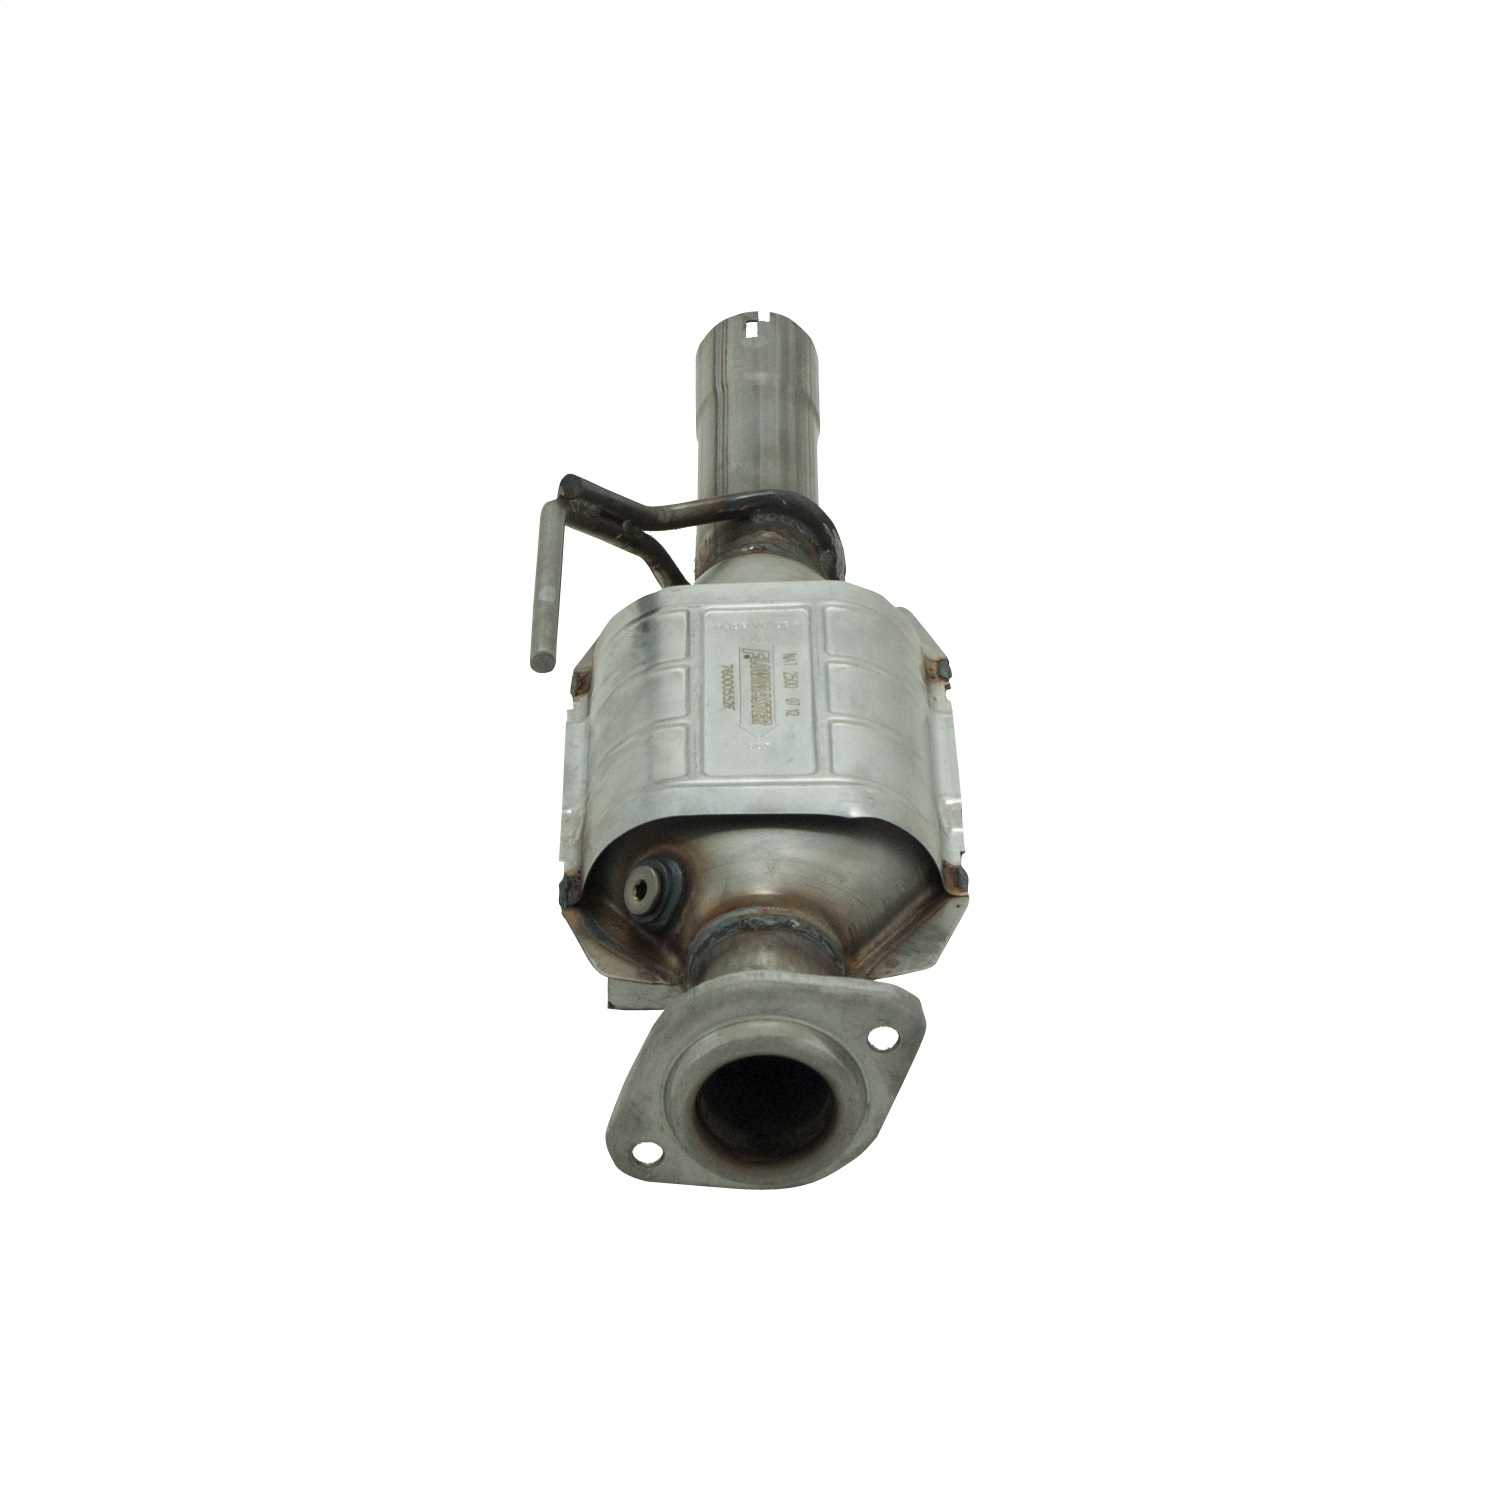 2040004 Flowmaster 49 State Catalytic Converters Direct Fit Catalytic Converter